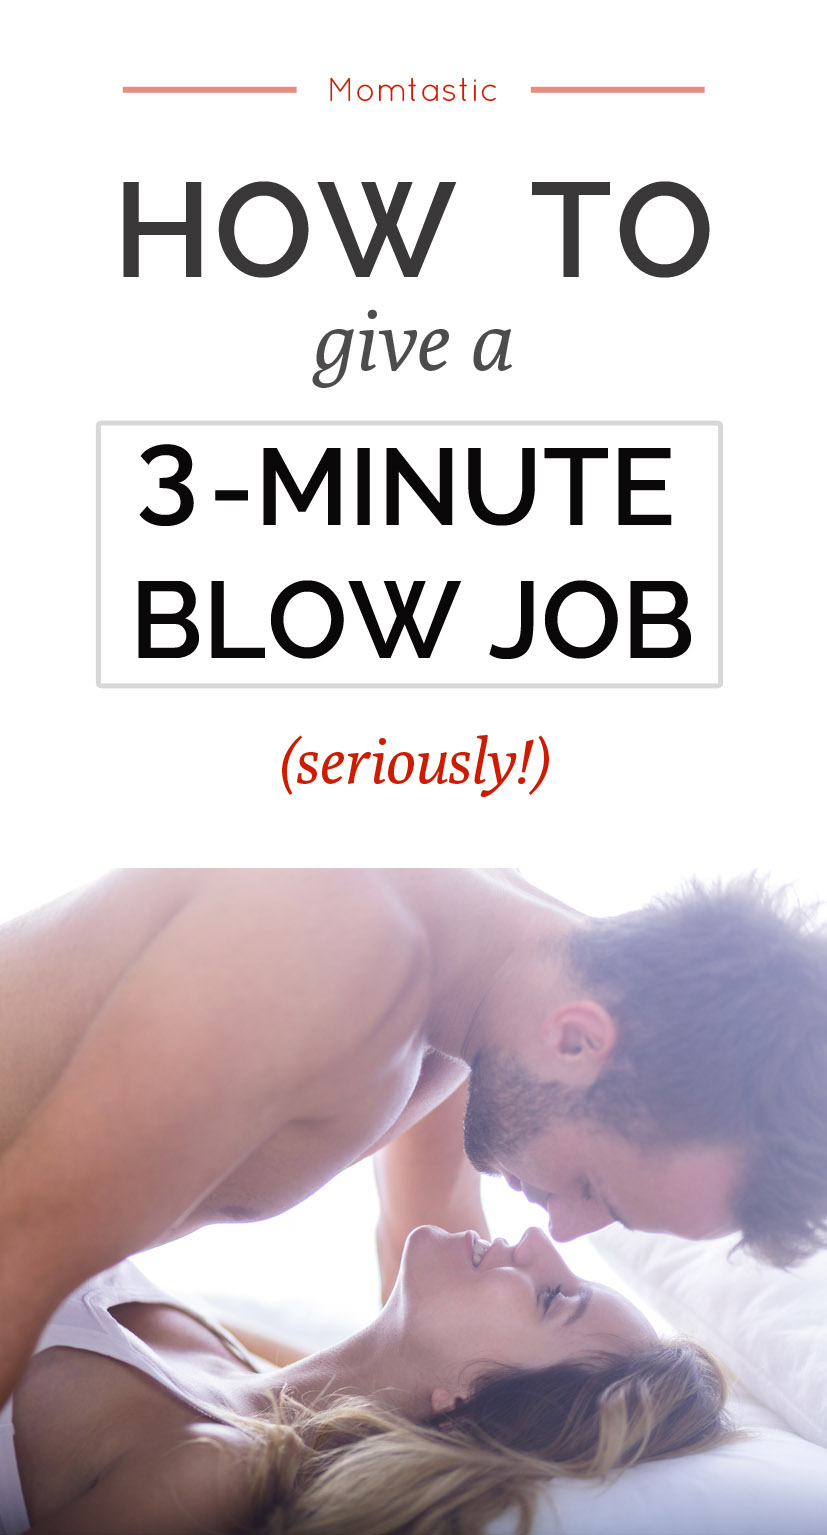 benefits of blowjob